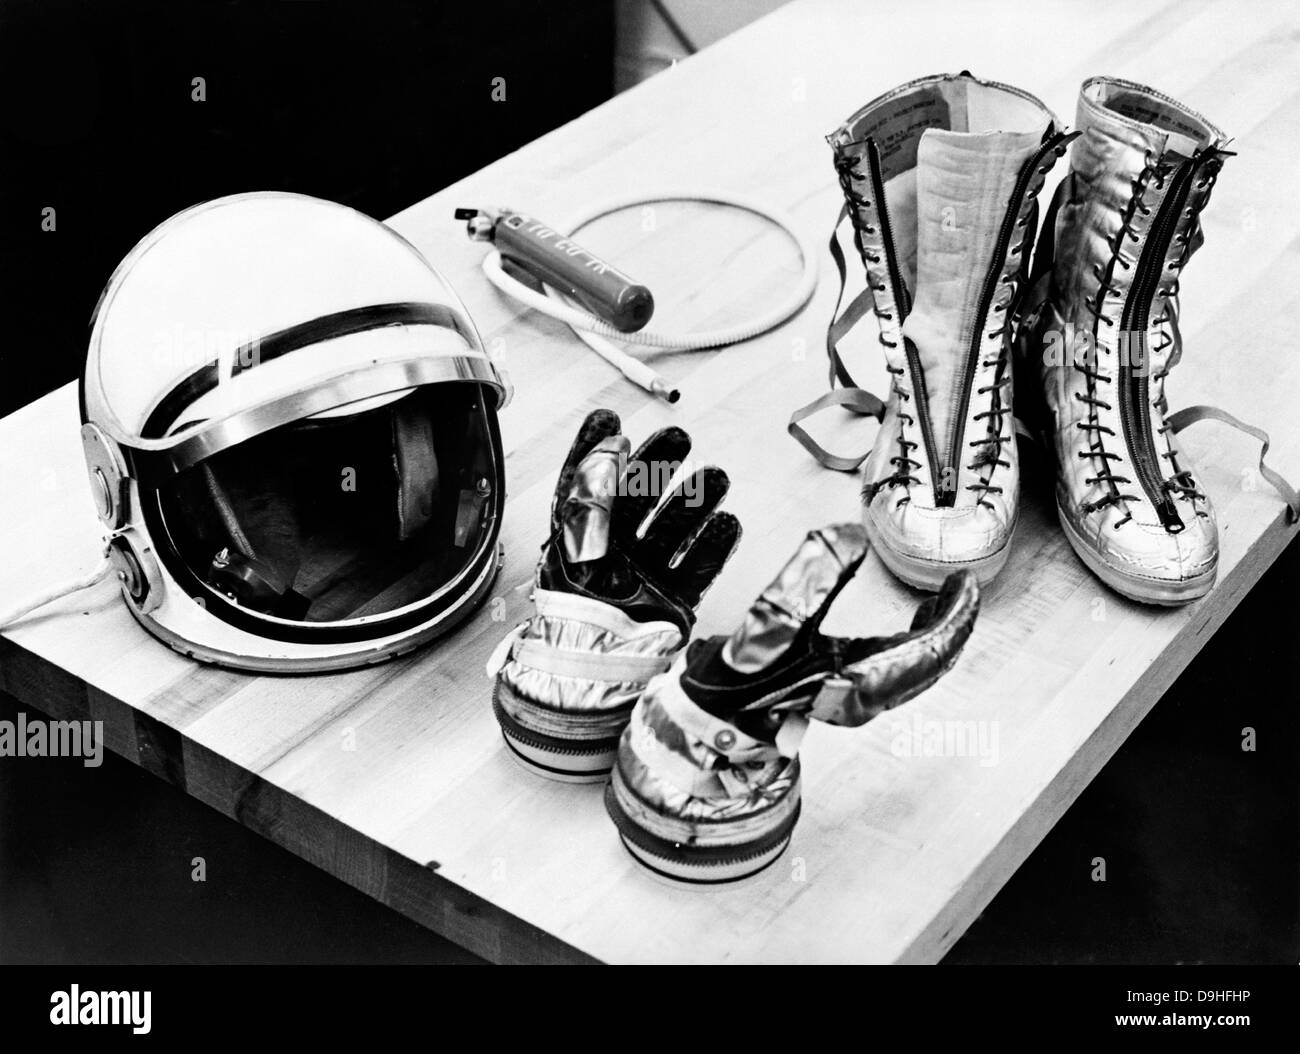 Components of the Mercury spacesuit included gloves, boots and a helmet. - Stock Image